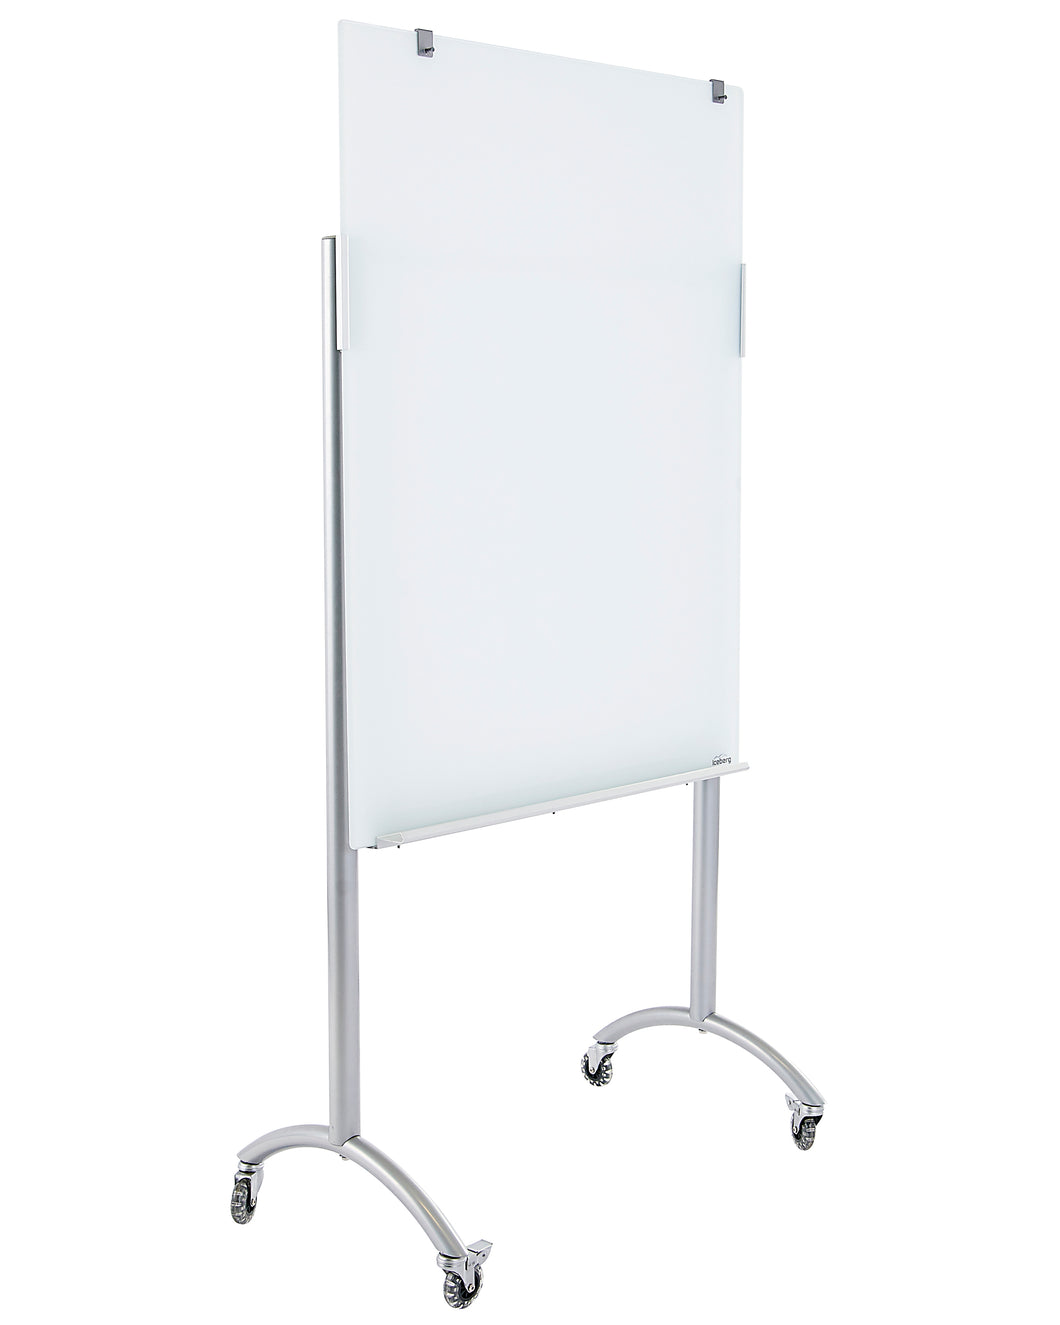 Clarity Glass Mobile Presentation White Board Easel